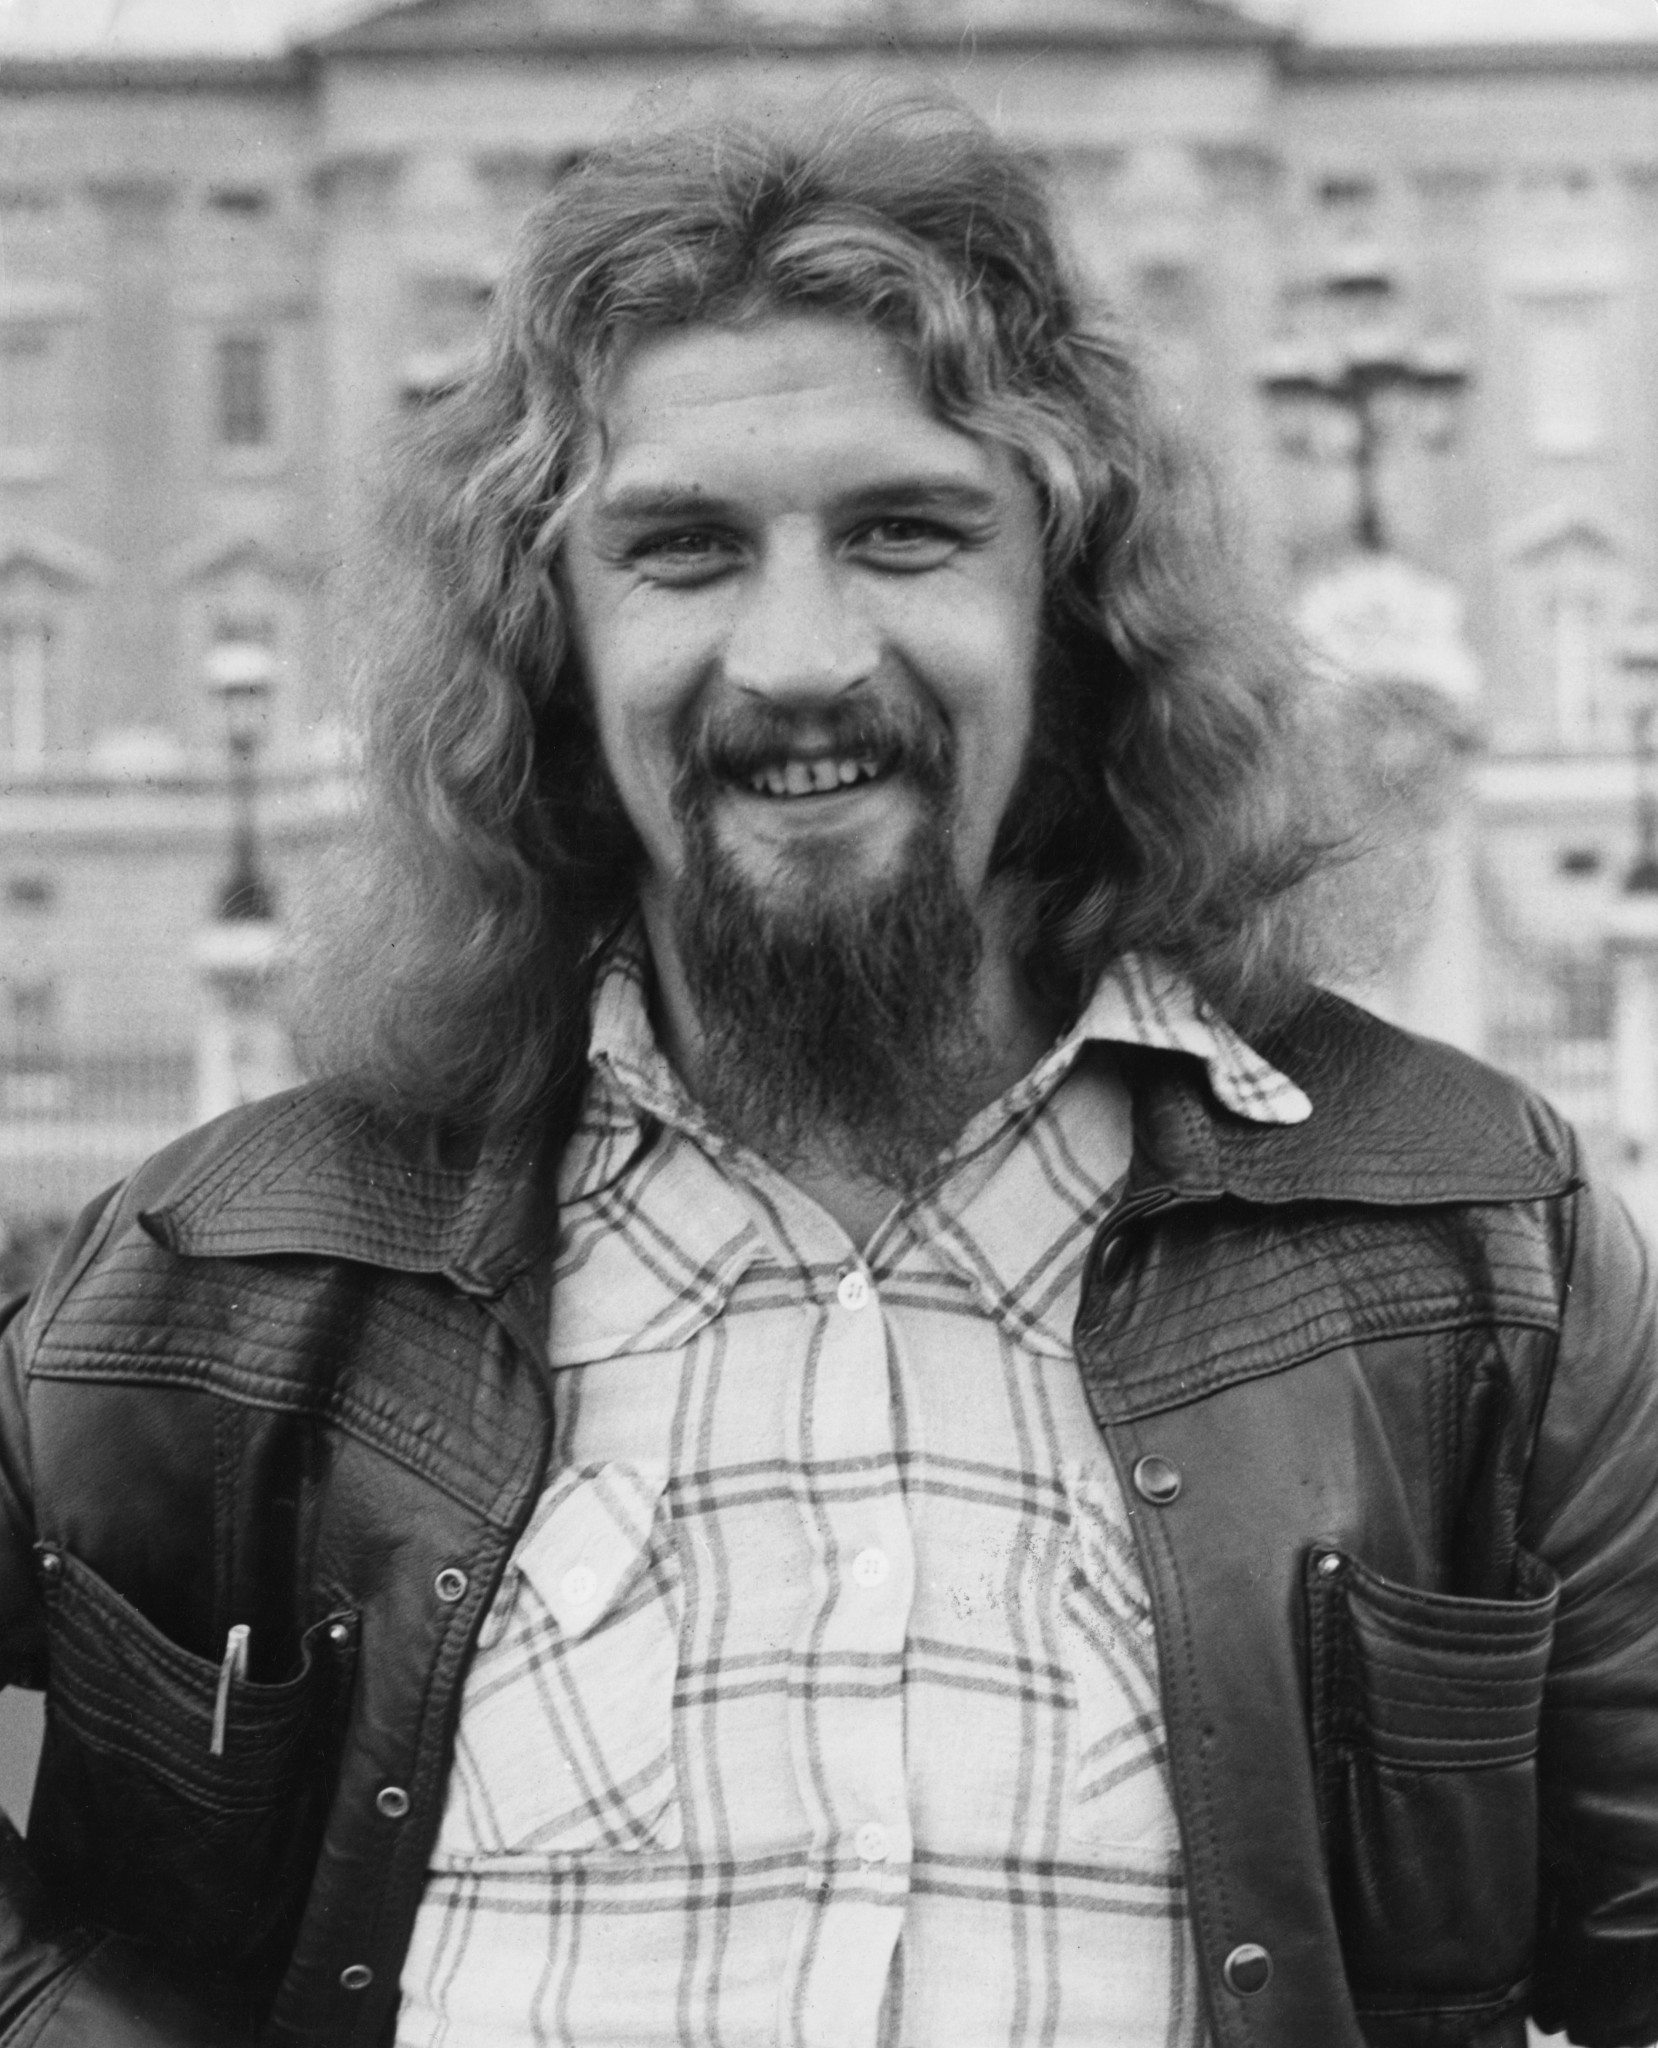 Billy Connolly at the start of his career